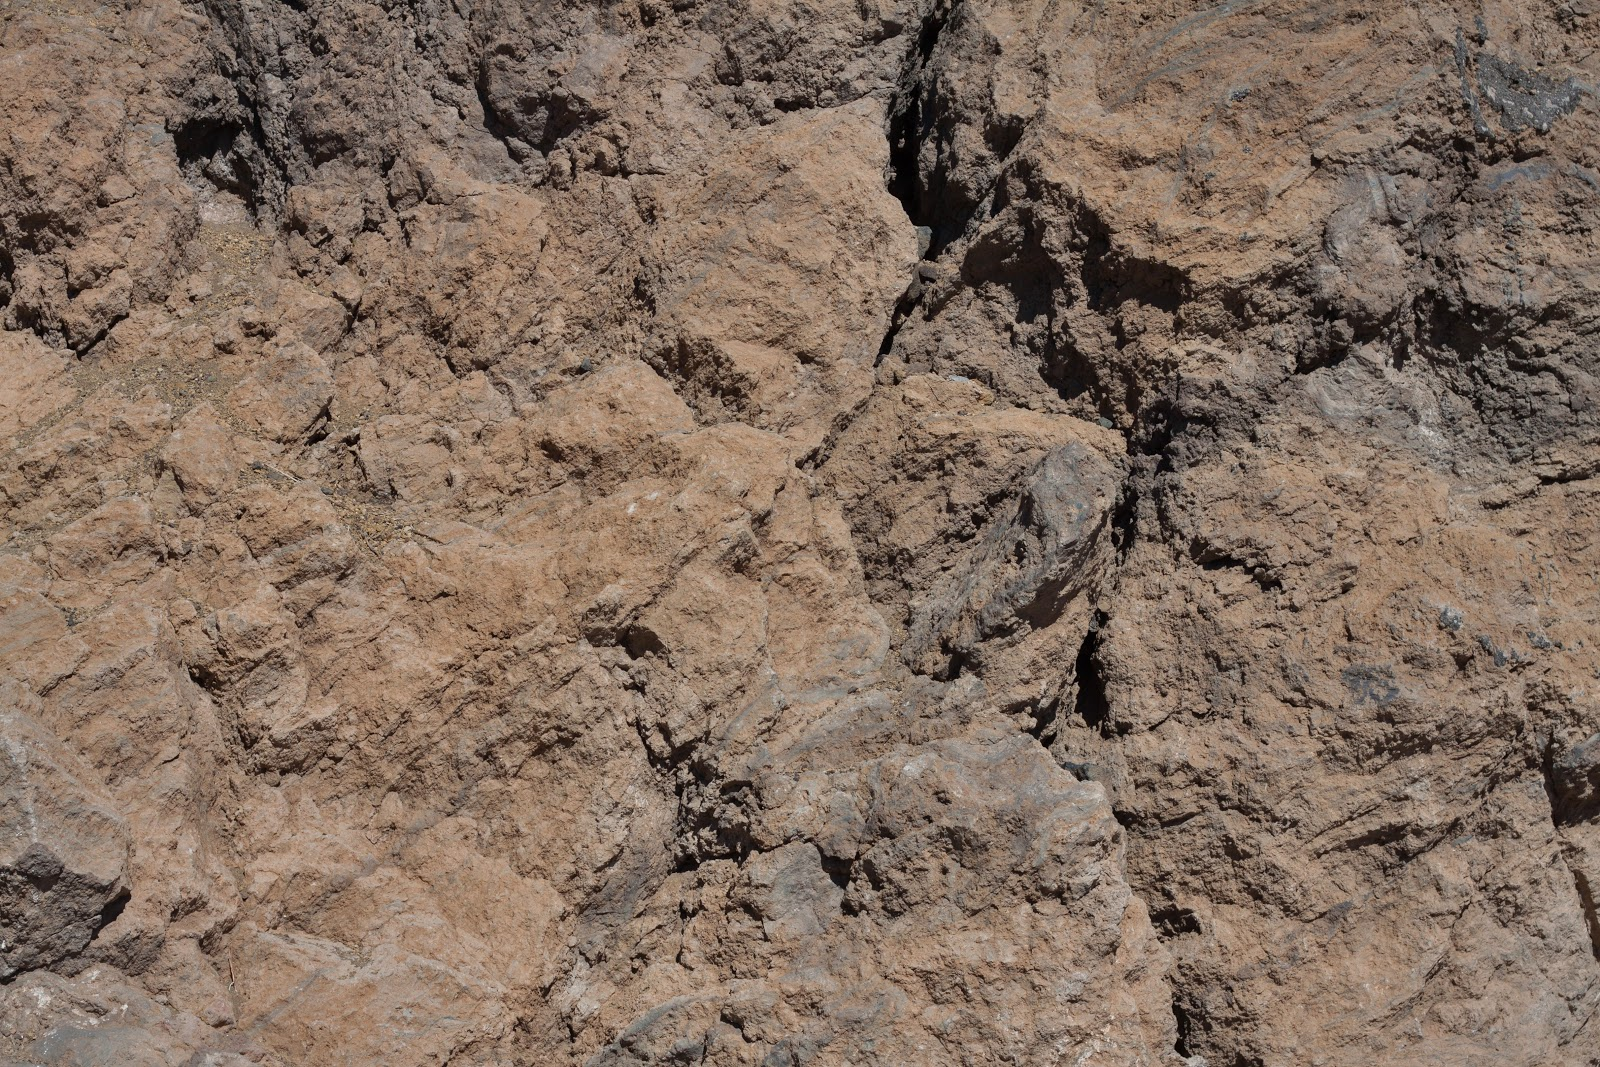 High Resolution Seamless Textures: Mountain rock face texture